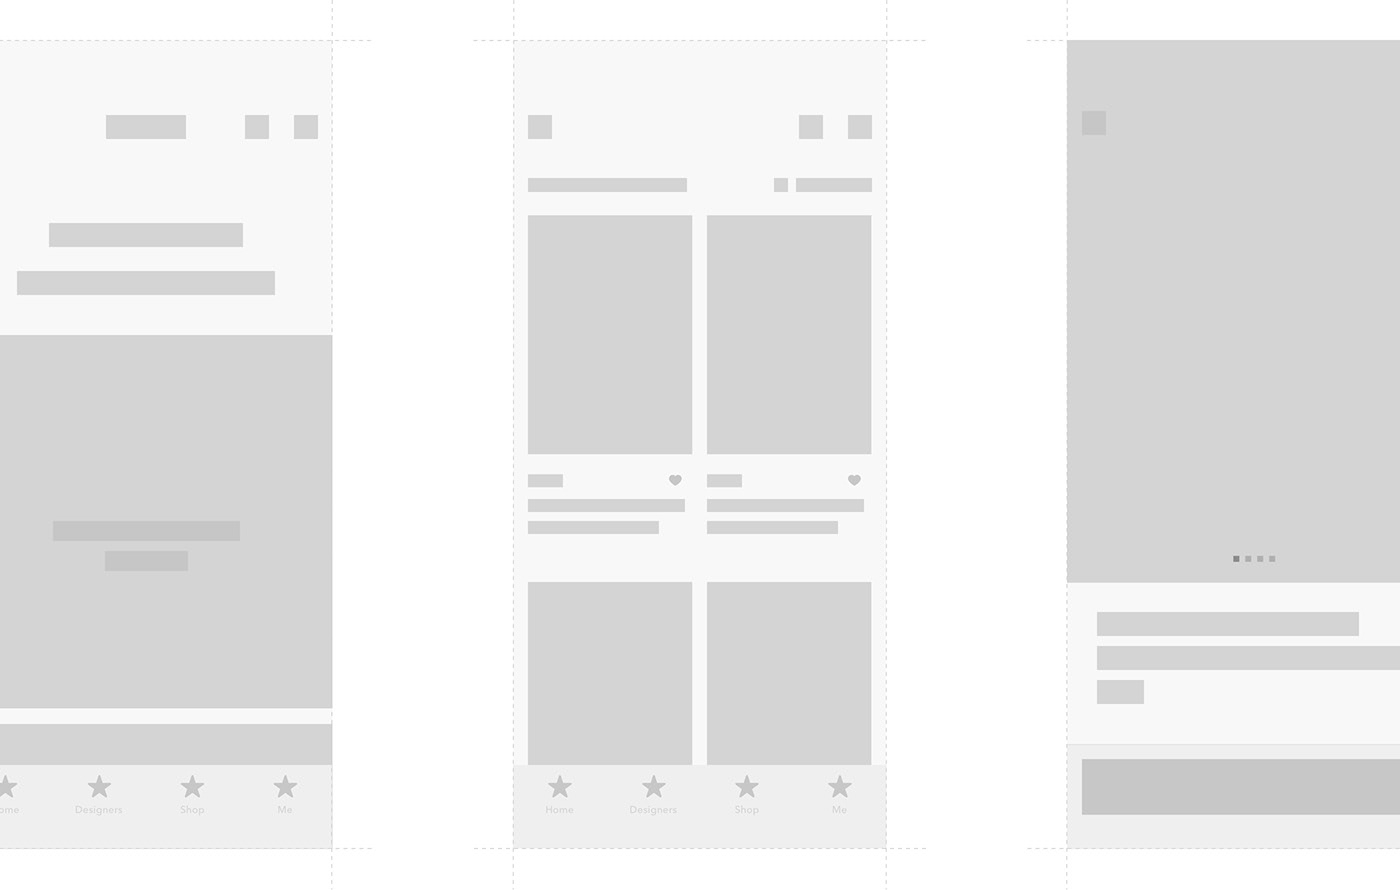 Layout and grid for main screens of a mobile shopping iOS app.